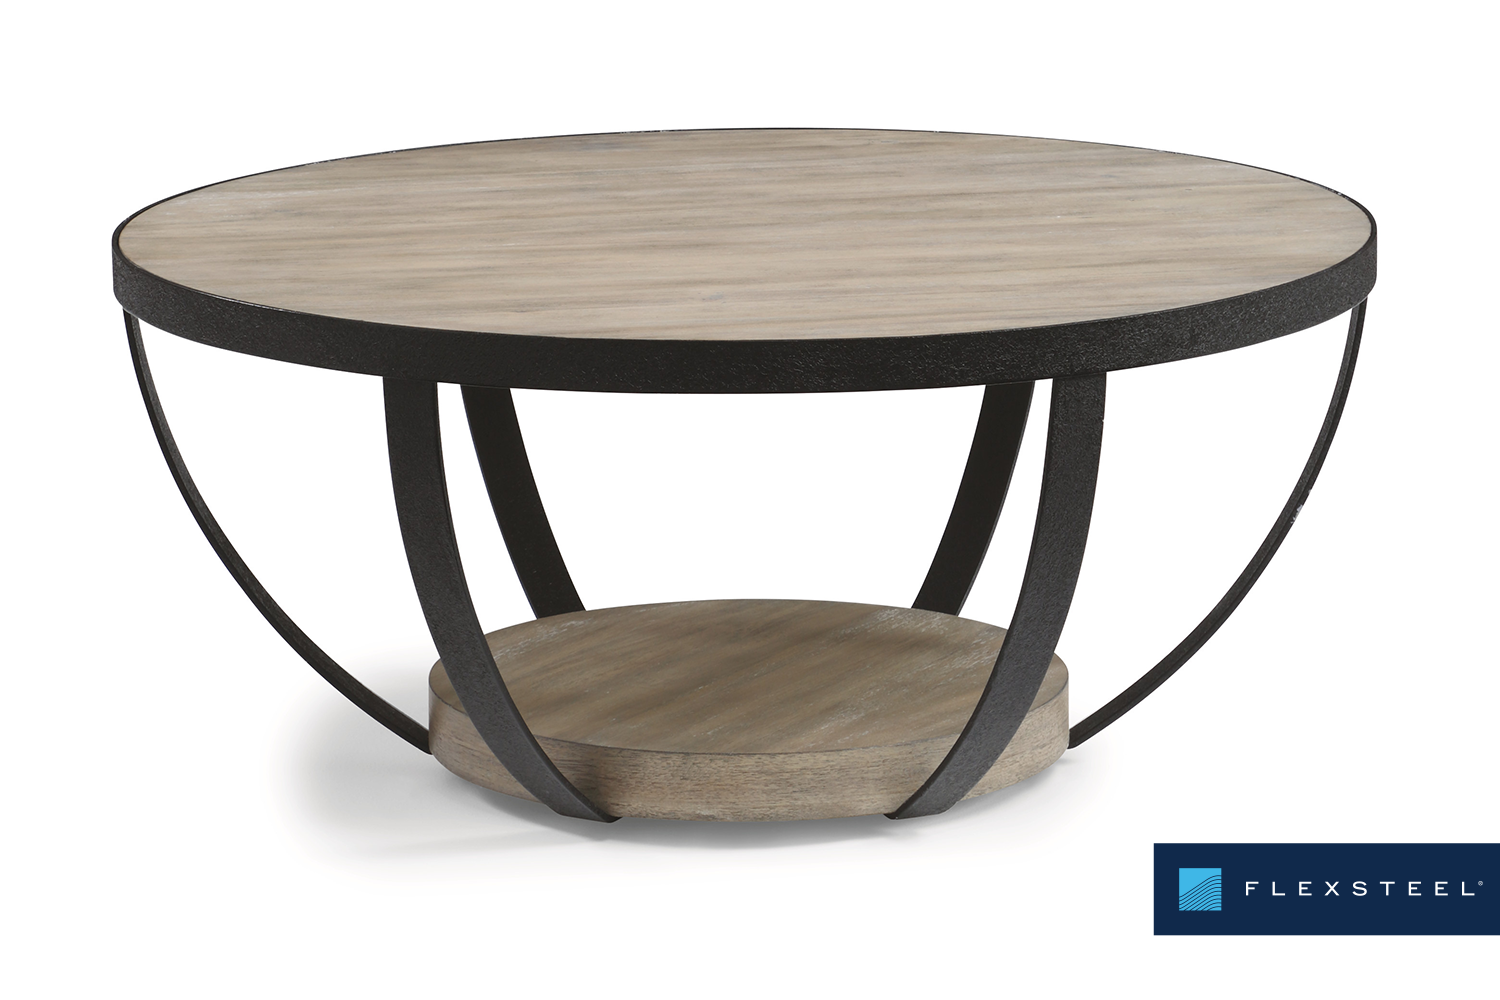 Round Design With A Striking Balance Of Style And Function Flexsteel Coffee Table Round Coffee Table Flexsteel Furniture [ 1000 x 1500 Pixel ]